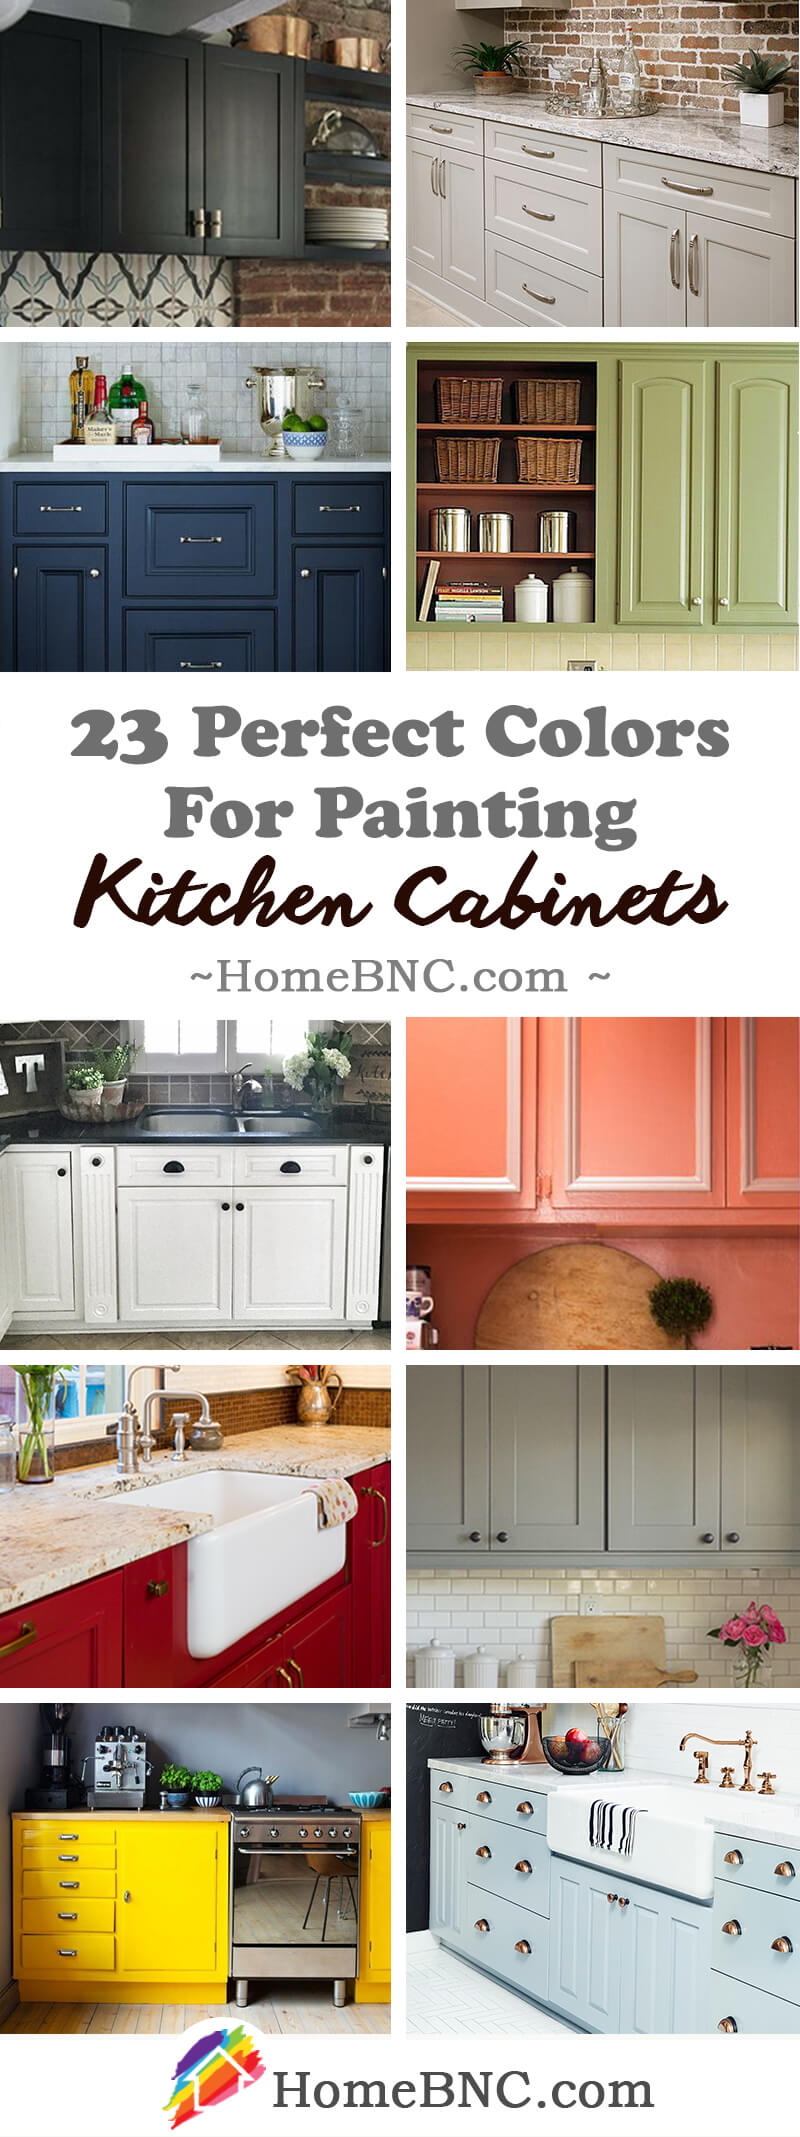 23 Best Kitchen Cabinets Painting Color Ideas And Designs For 2020